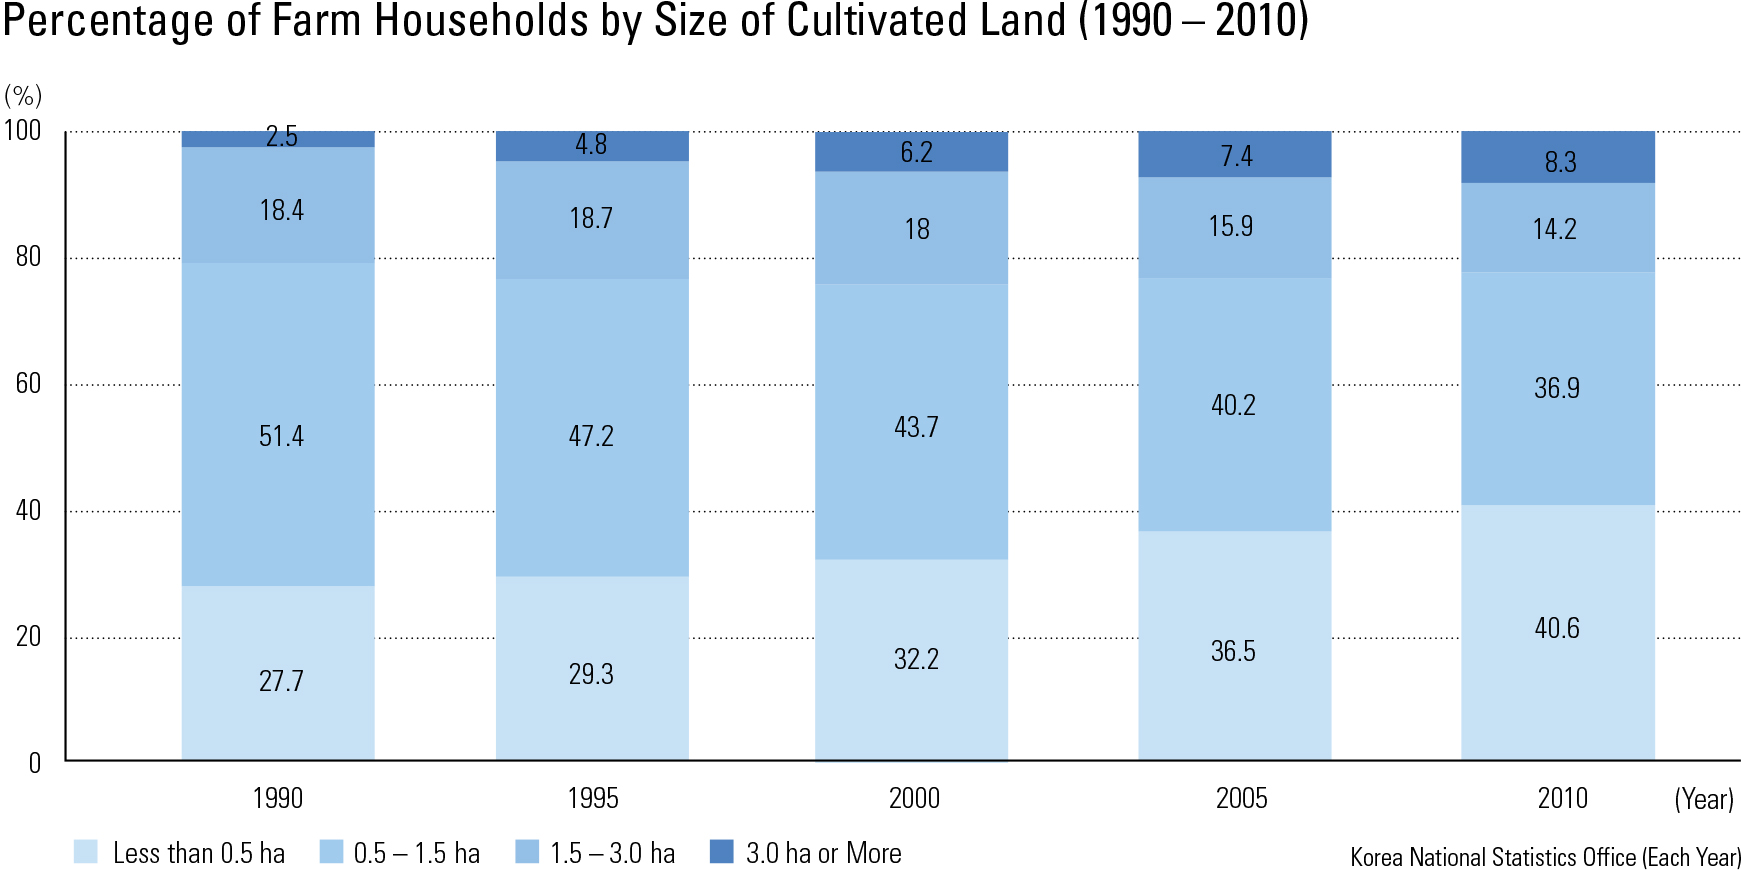 "Percentage of Farm Households by Size of Cultivated Land (1990 – 2010)<p class=""oz_zoom"" zimg=""http://imagedata.cafe24.com/us_3/us3_160-6_2.jpg""><span style=""font-family:Nanum Myeongjo;""><span style=""font-size:18px;""><span class=""label label-danger"">UPDATE DATA</span></span></p>"